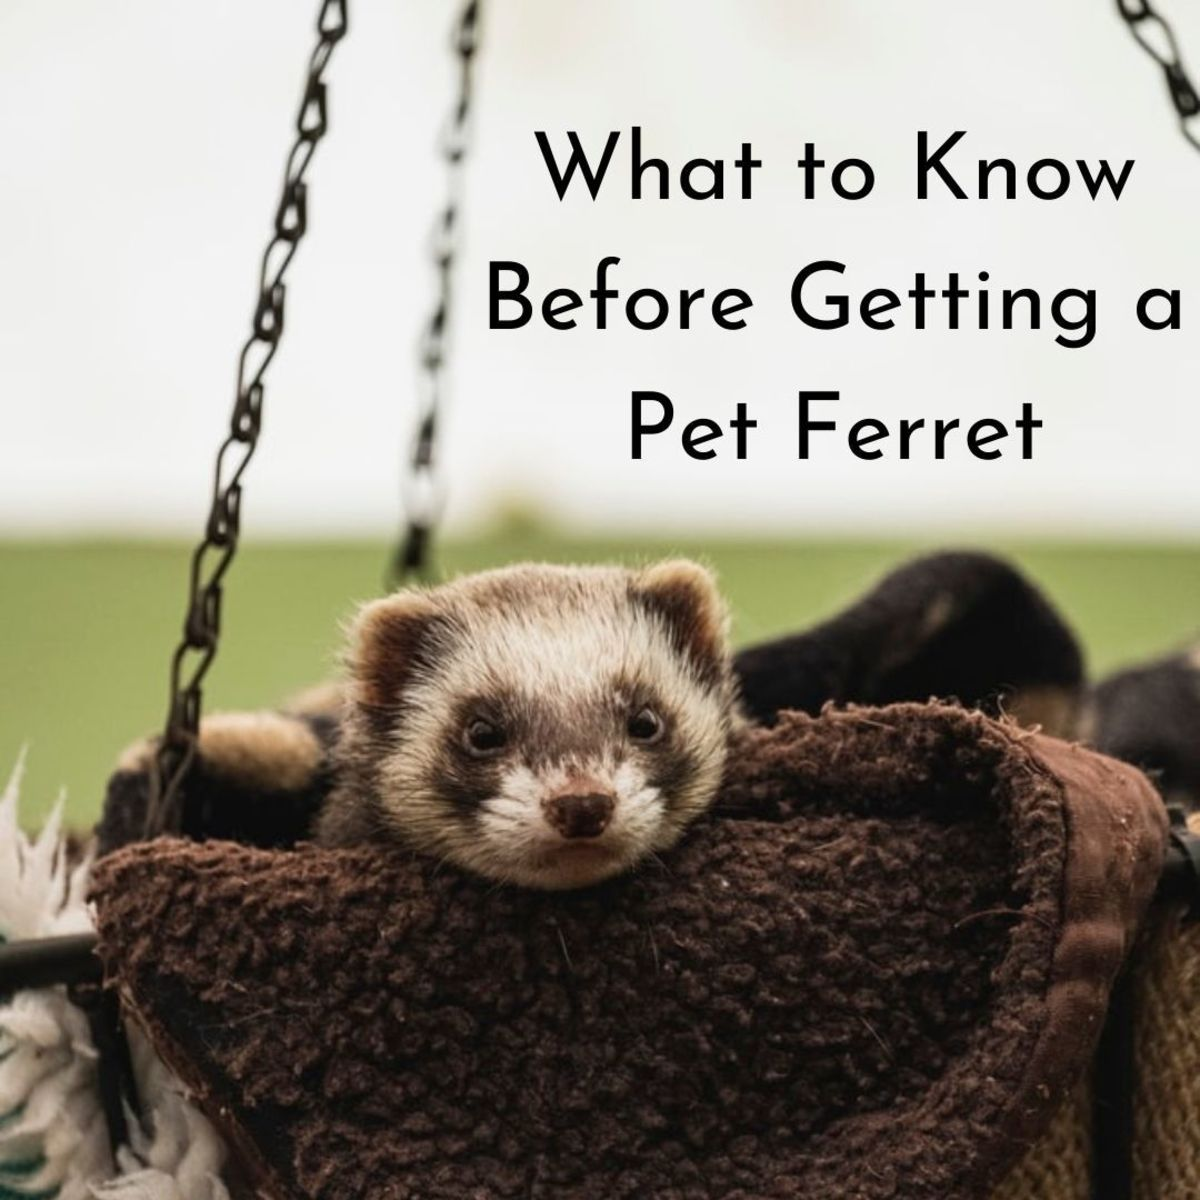 Ferrets are extremely interesting creatures!